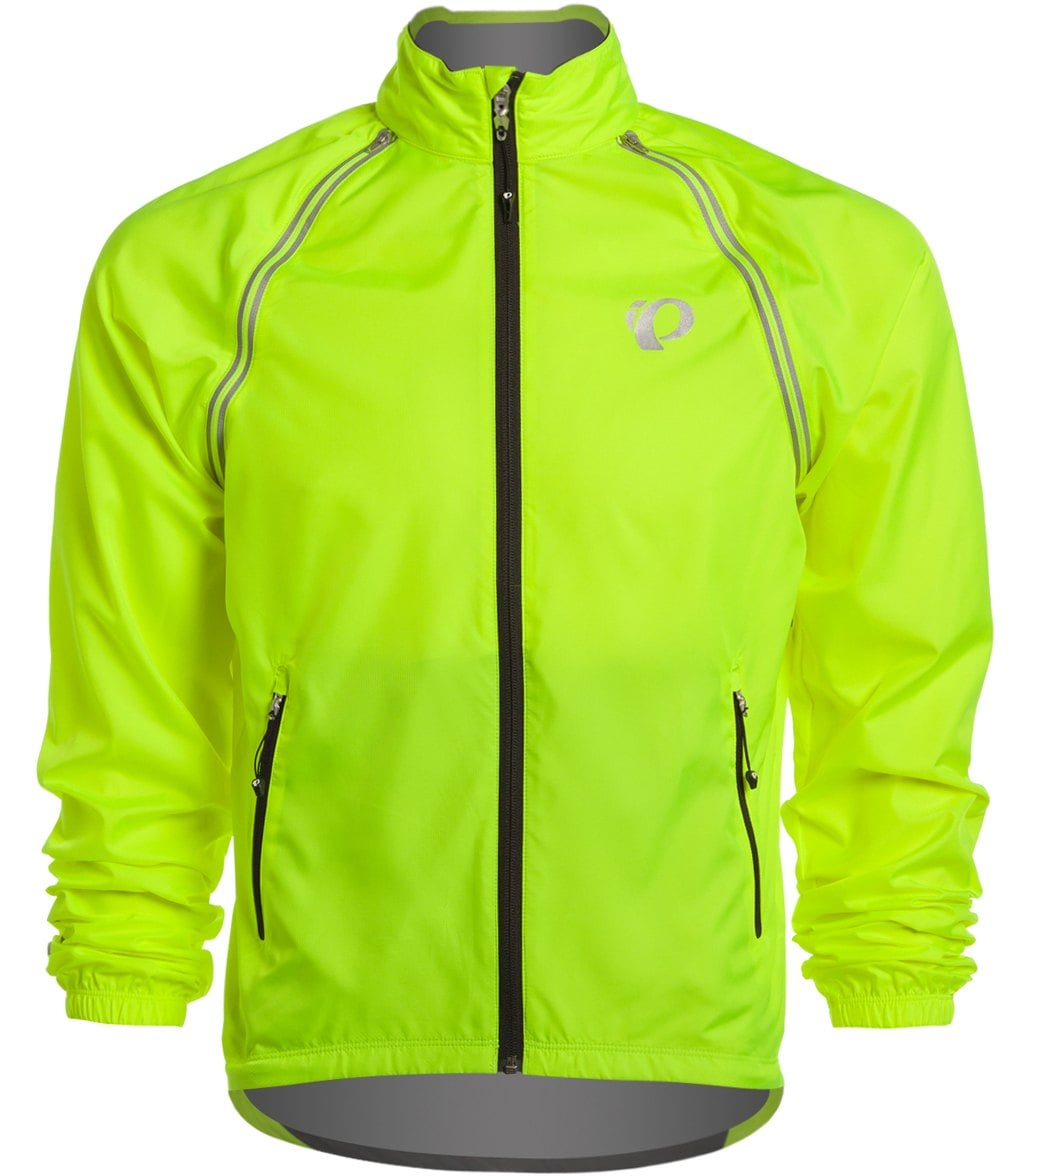 7c2bd16e0 Pearl Izumi Men s Elite Barrier Convertible Jacket at SwimOutlet.com - Free  Shipping